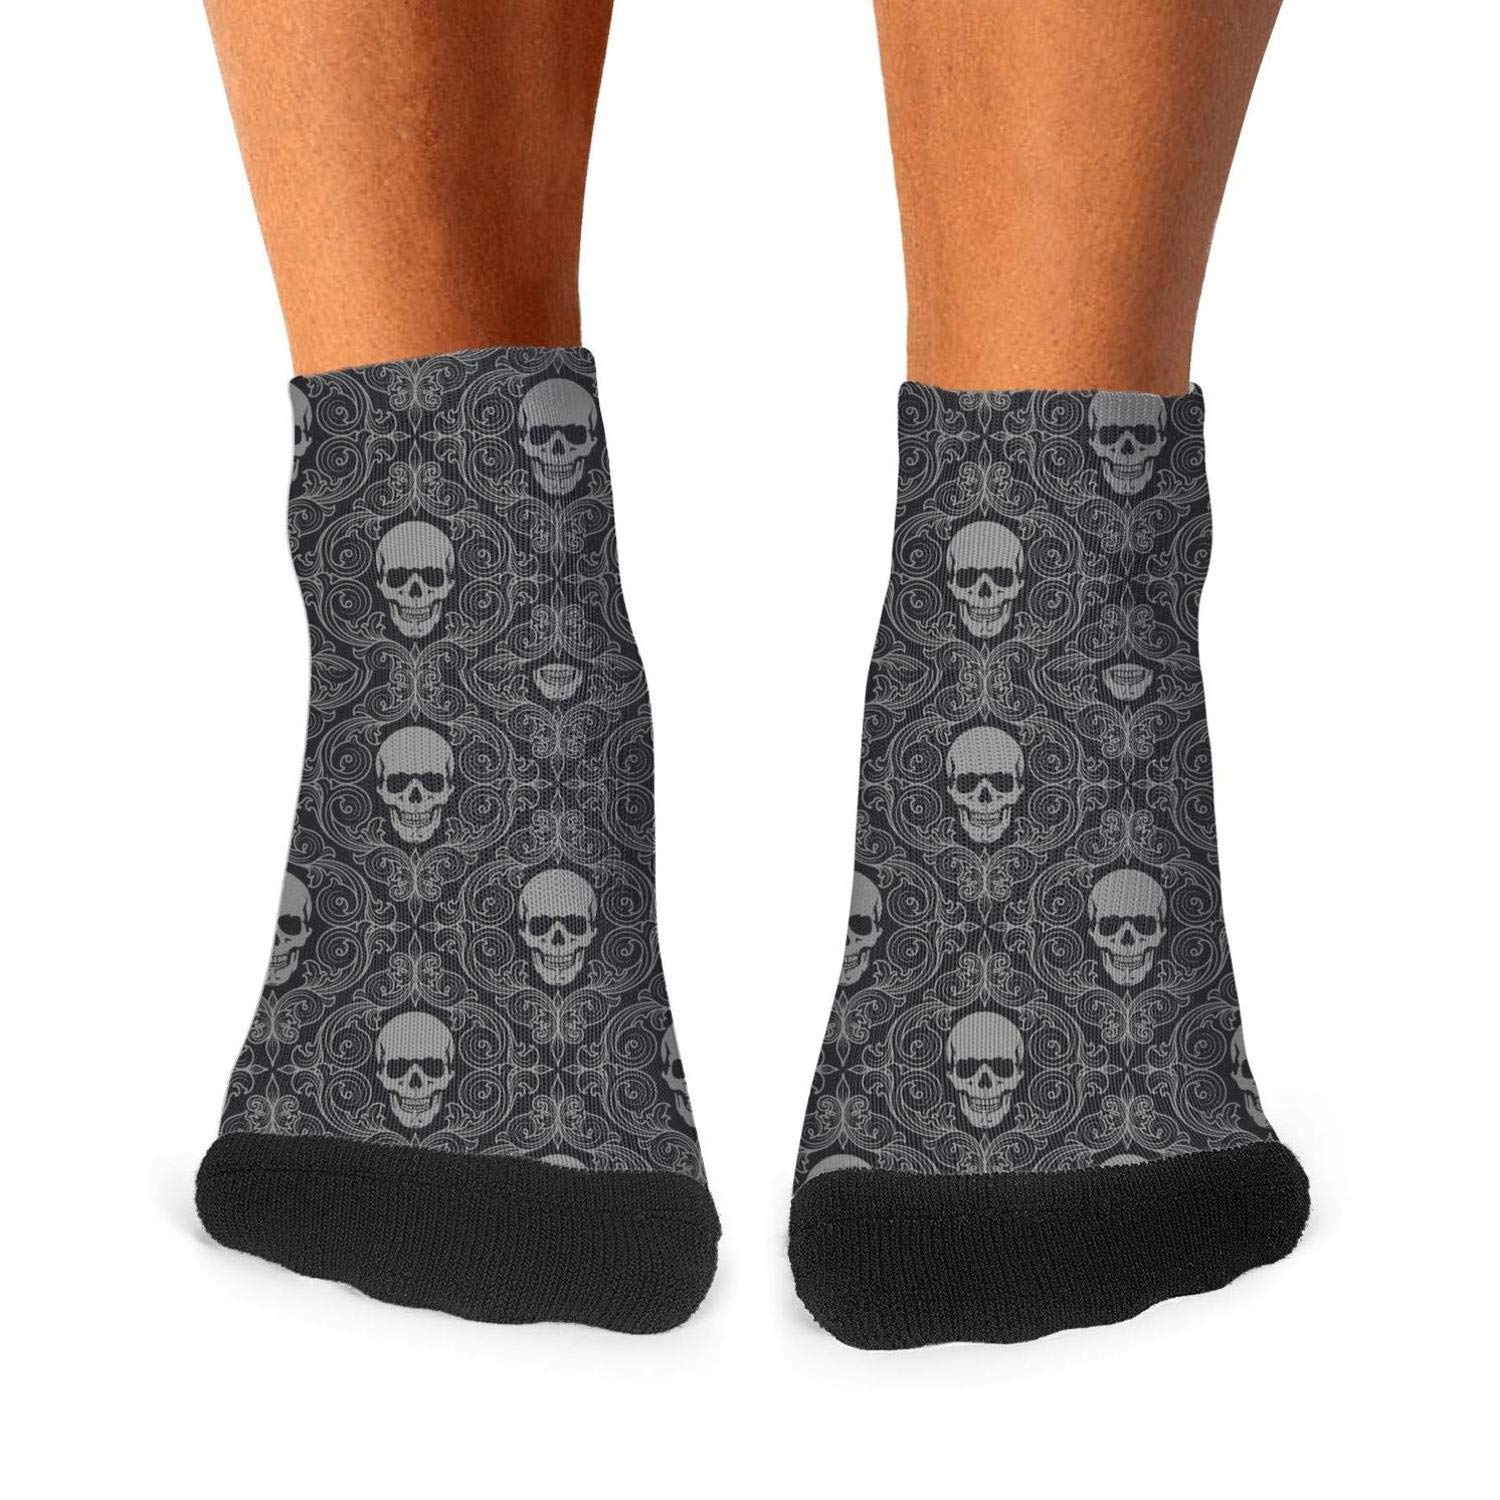 Floowyerion Mens Wallpaper Skull Logo Novelty Sports Socks Crazy Funny Crew Tube Socks